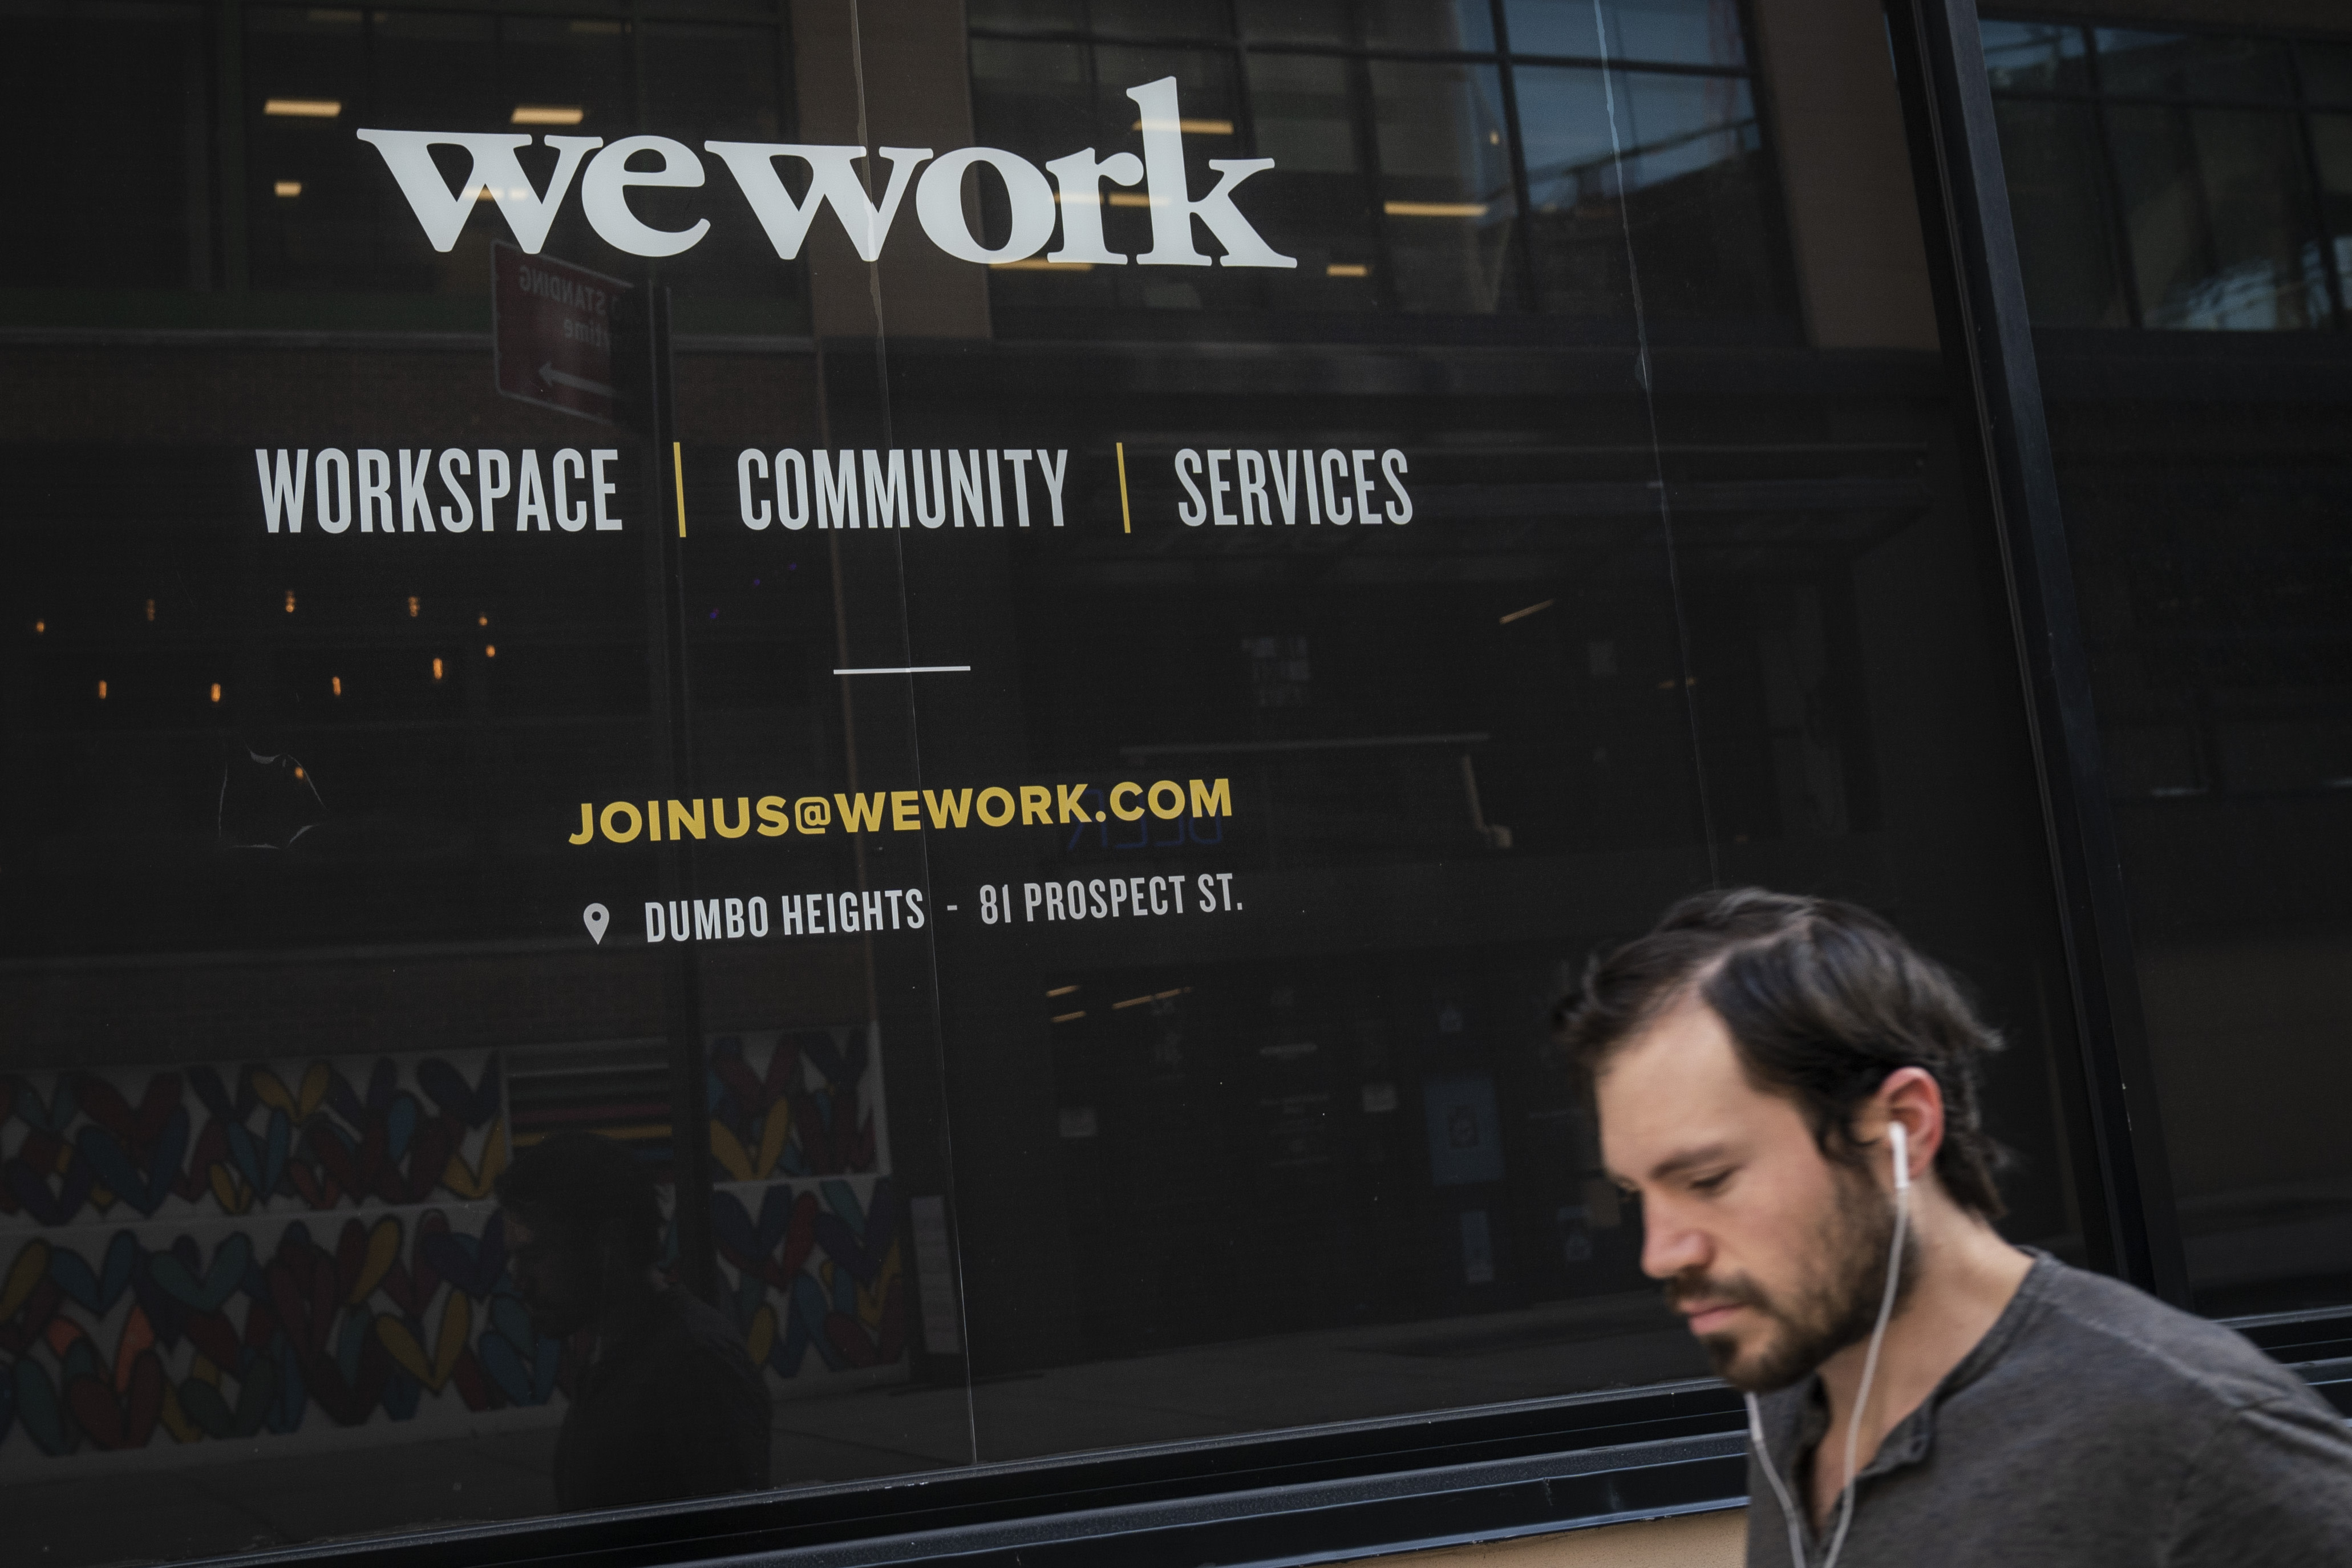 WeWork CEO Threw a Party Featuring DMC and Tequila Shots After Mass Layoffs